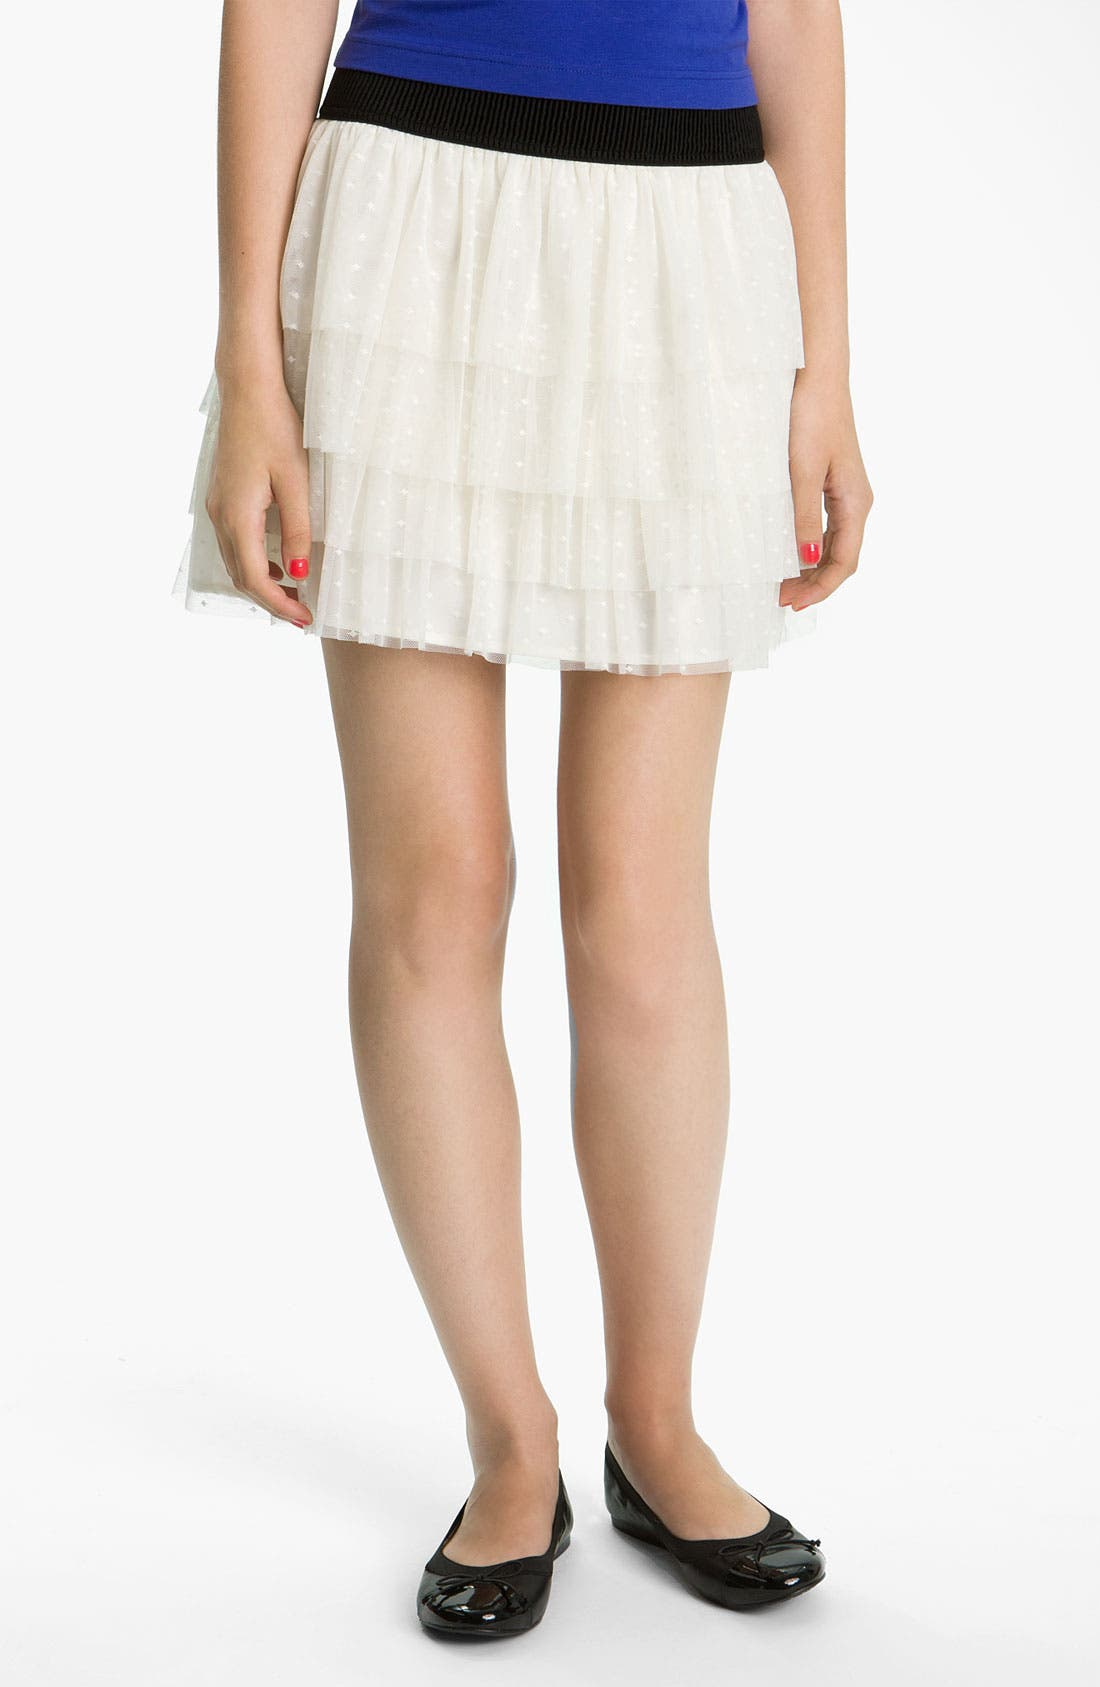 Alternate Image 1 Selected - Necessary Objects Tiered Swiss Dot Lace Skirt (Juniors)